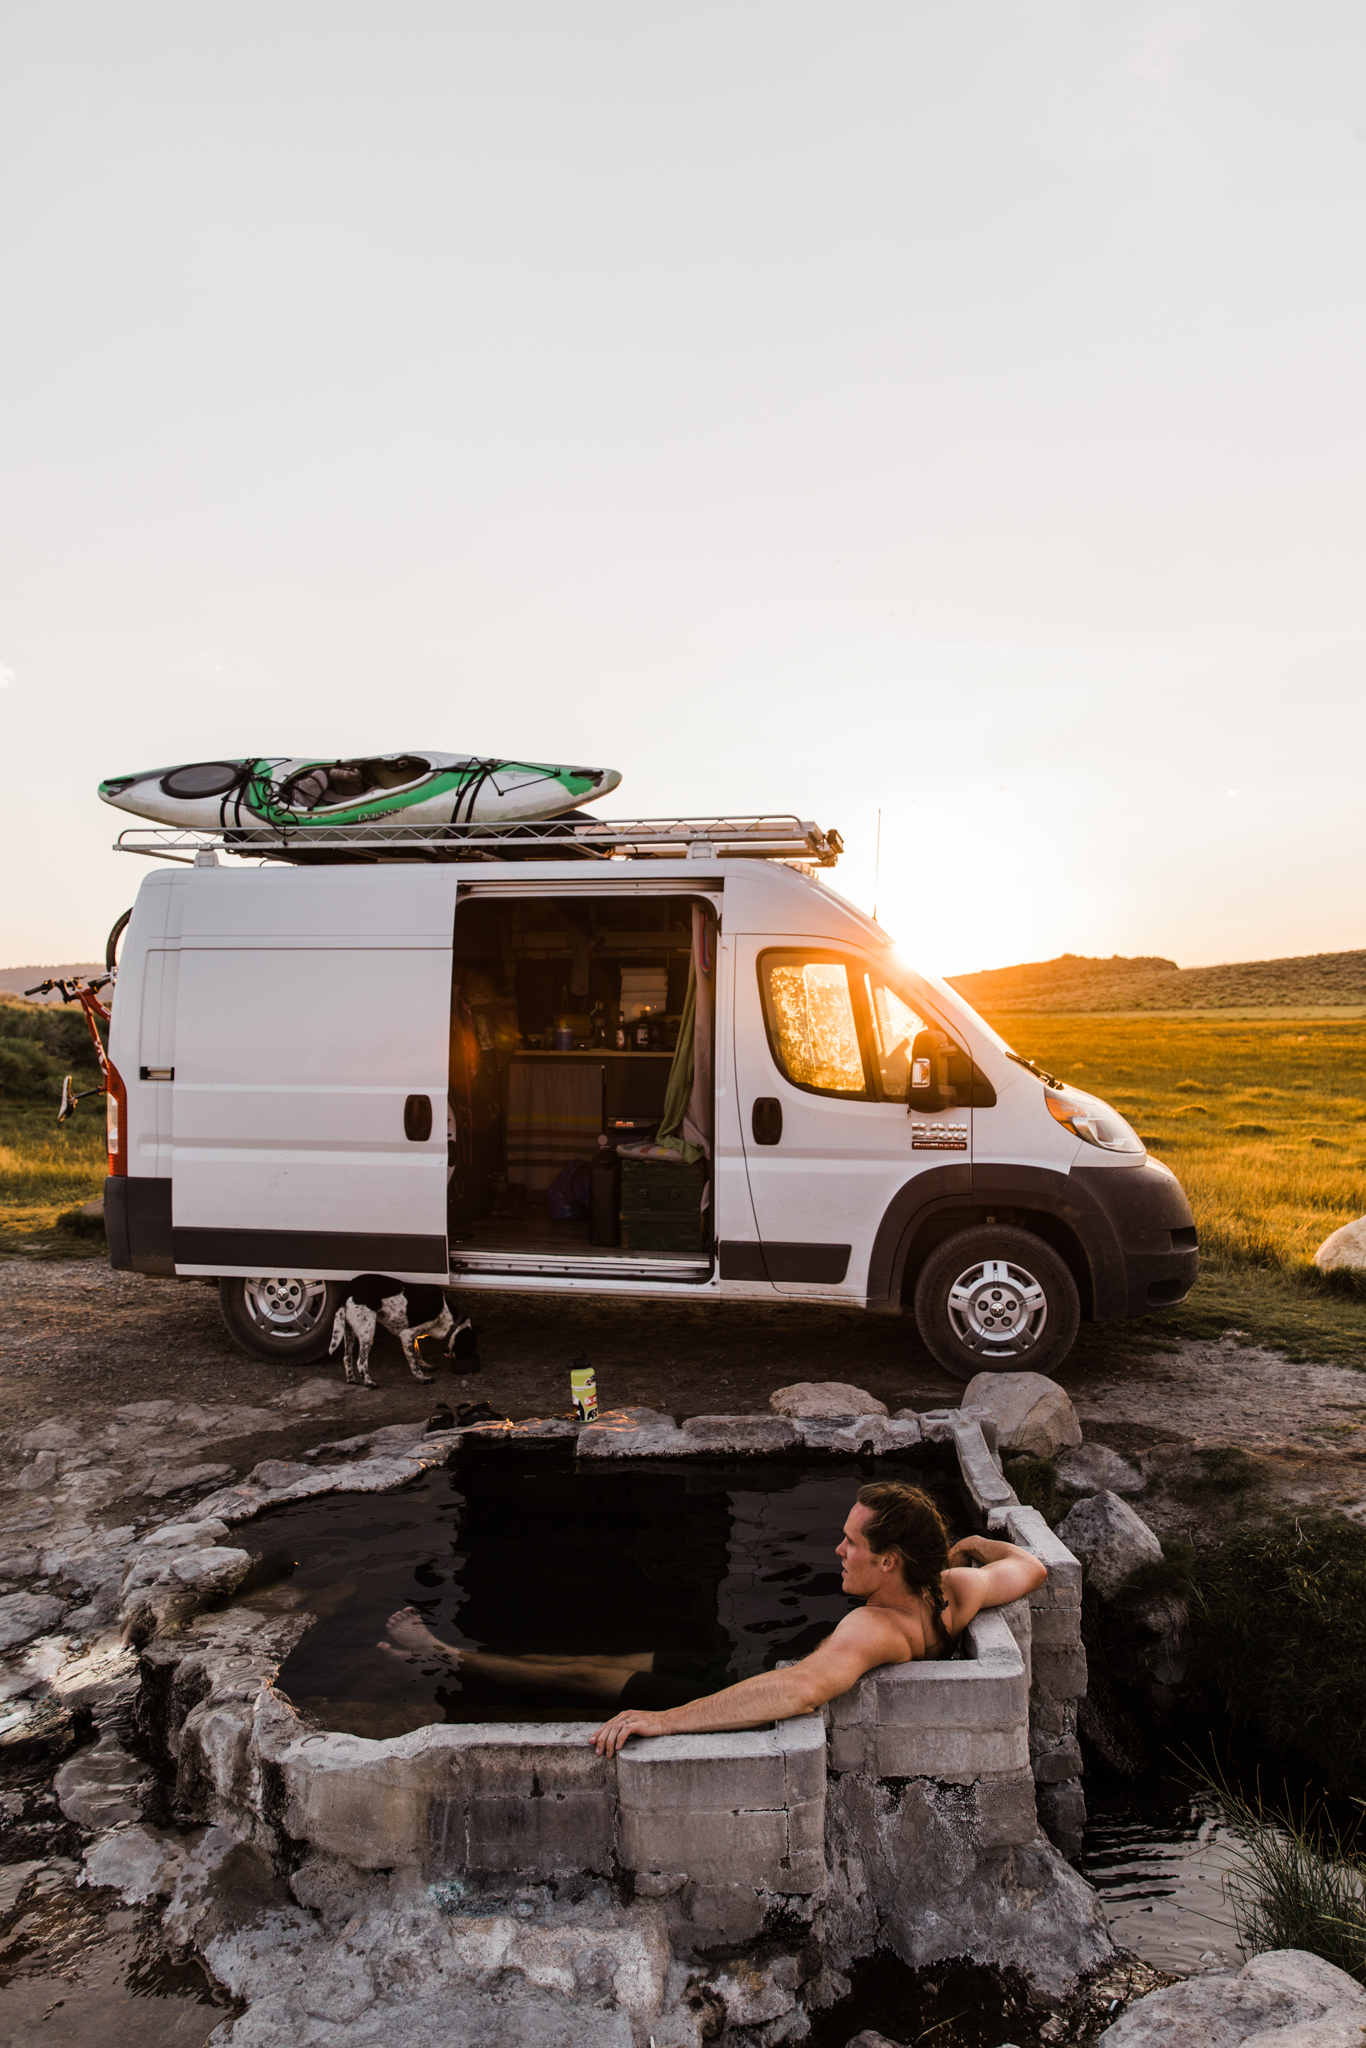 hot springs and van life | utah and california adventure elopement photographers | the hearnes adventure photography | www.thehearnes.com